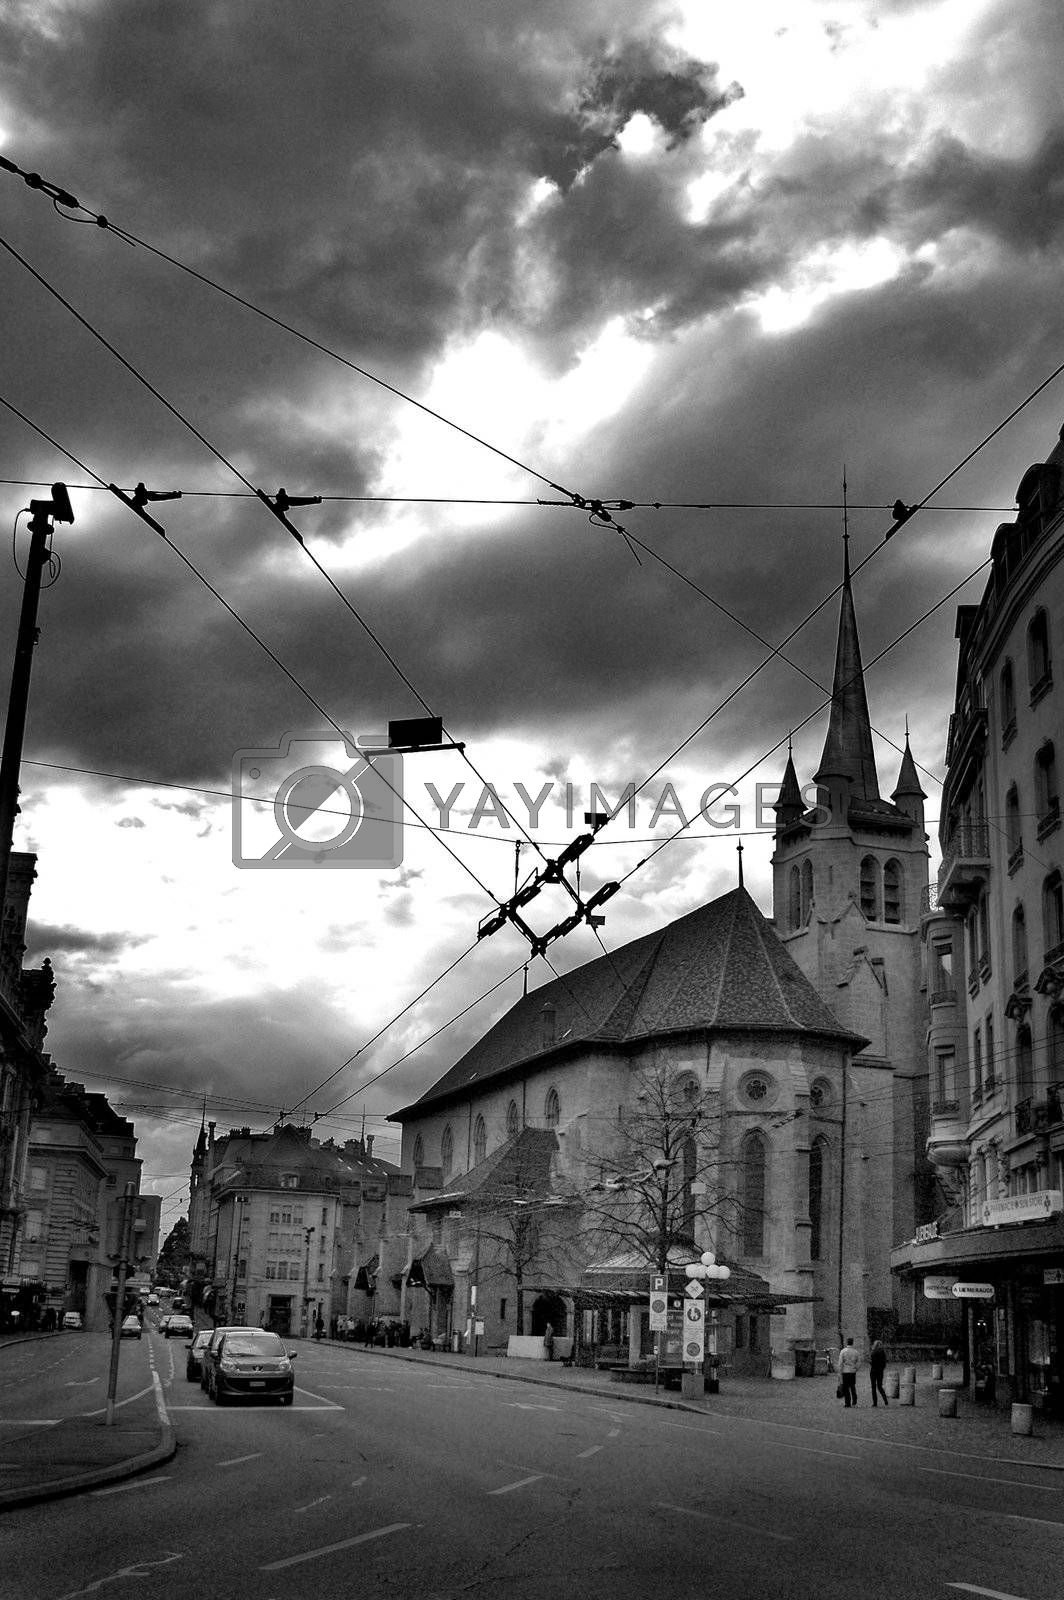 Street scene in Lausanne, Switzerland including a church in black and white.